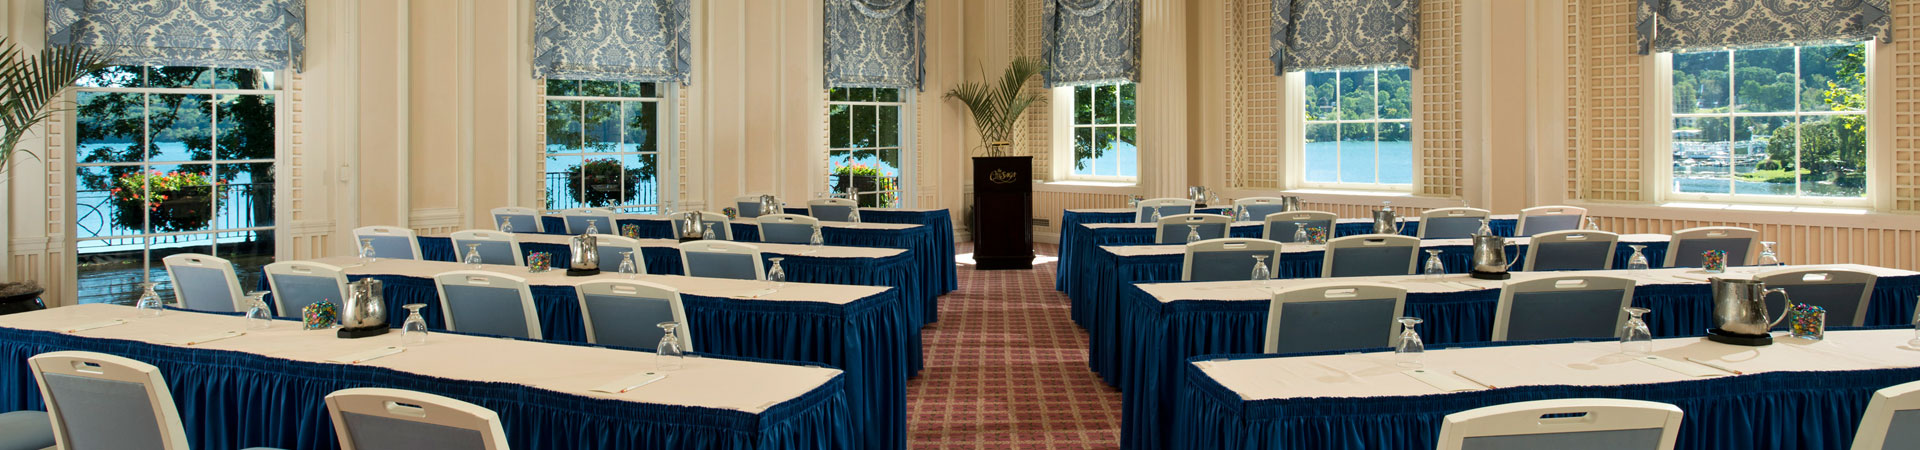 Meeting Facilities in The Otesaga Resort Hotel Cooperstown, New York